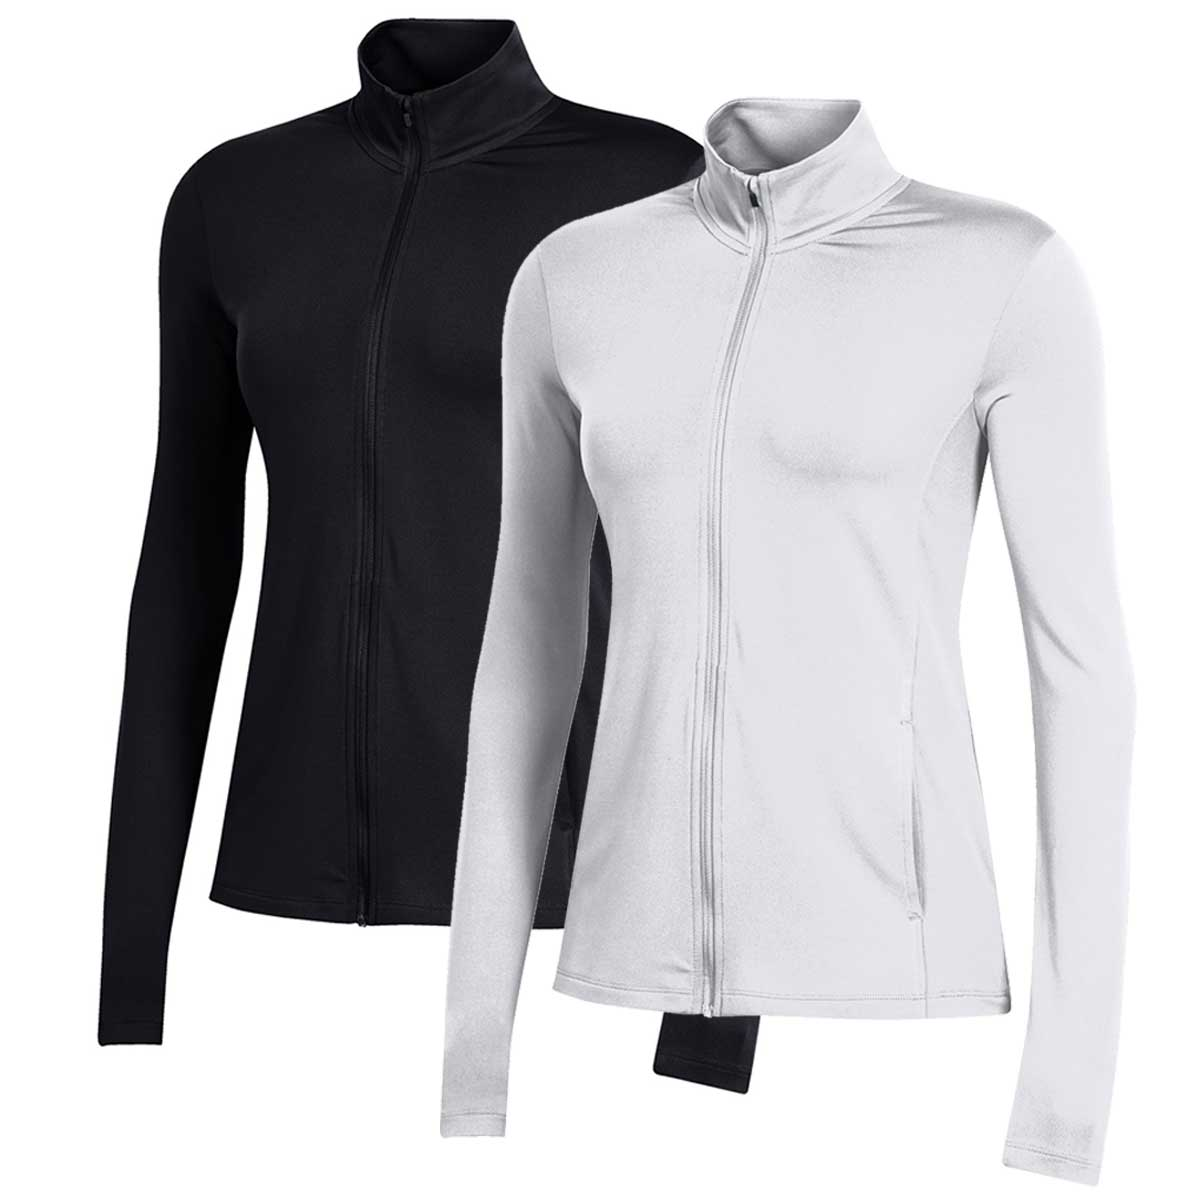 Under Armour Women's Zinger Tulip Full Zip Jacket